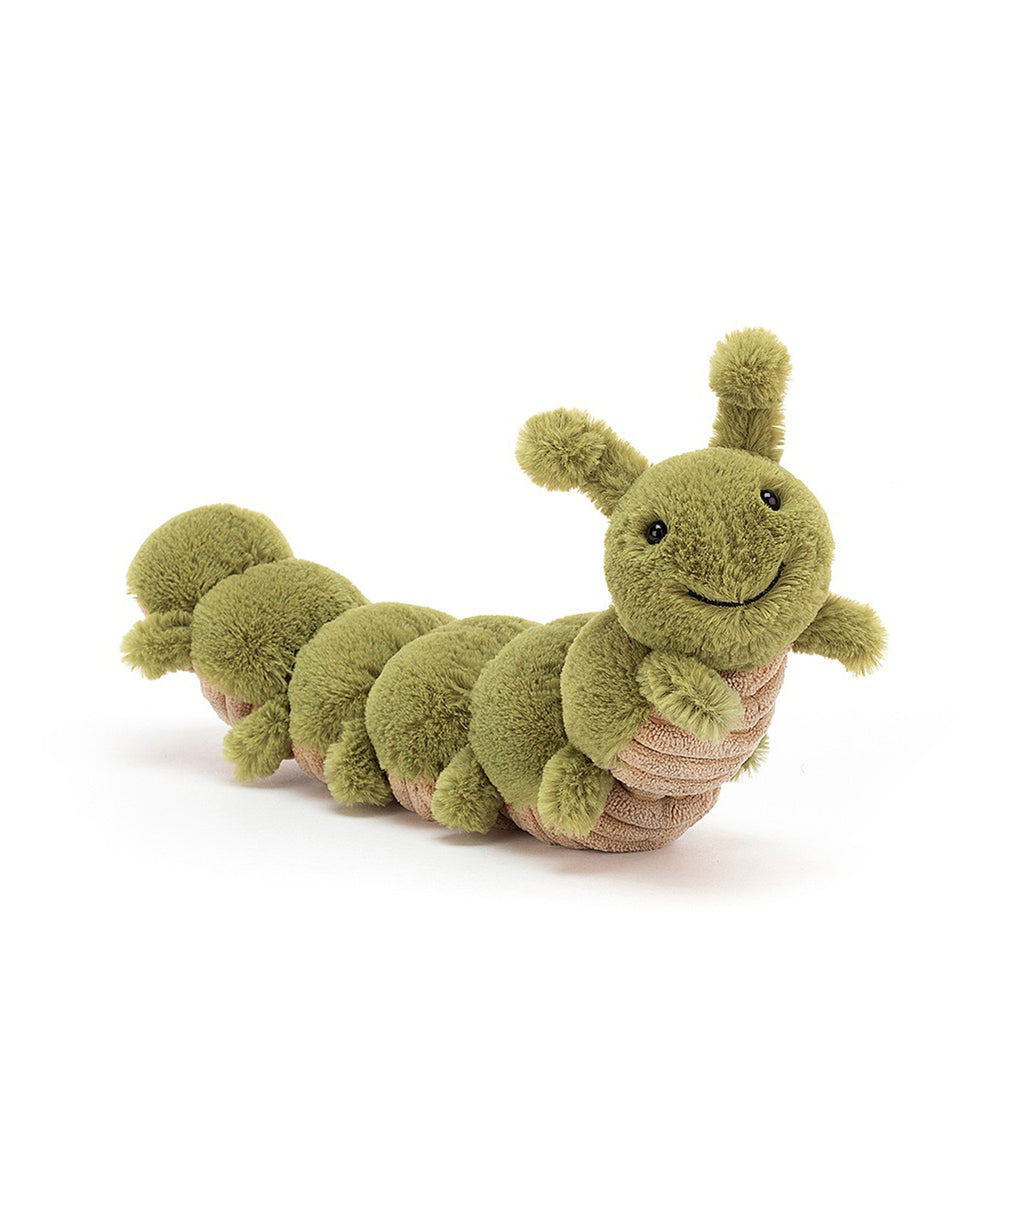 Jelly Cat - Christopher Caterpillar